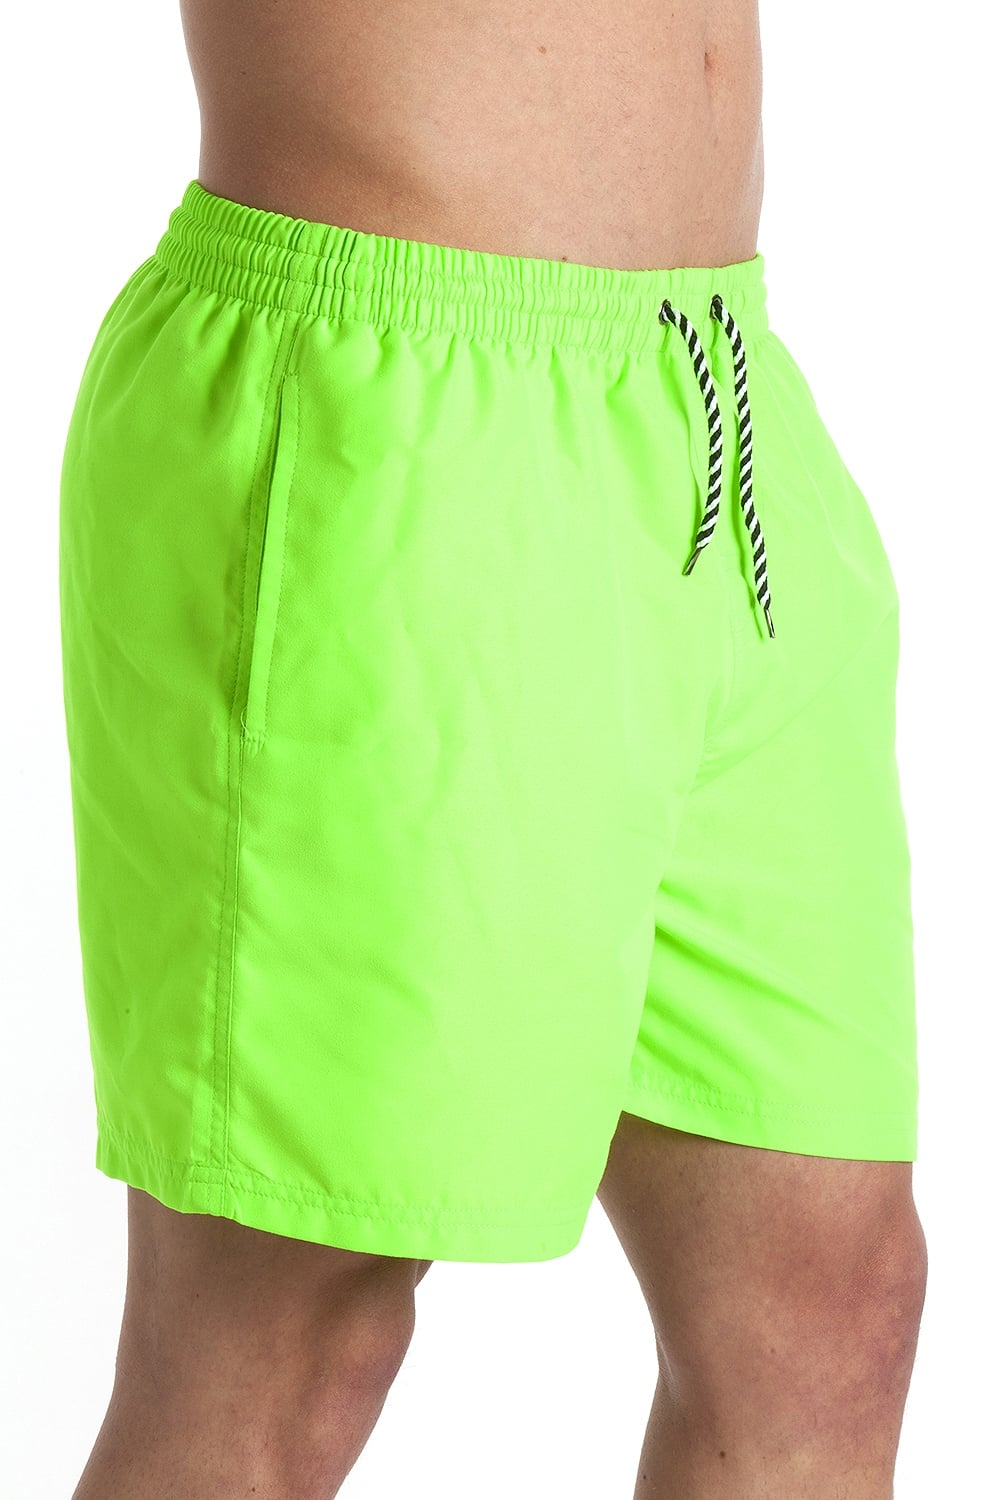 Find great deals on eBay for mens neon green shorts. Shop with confidence.